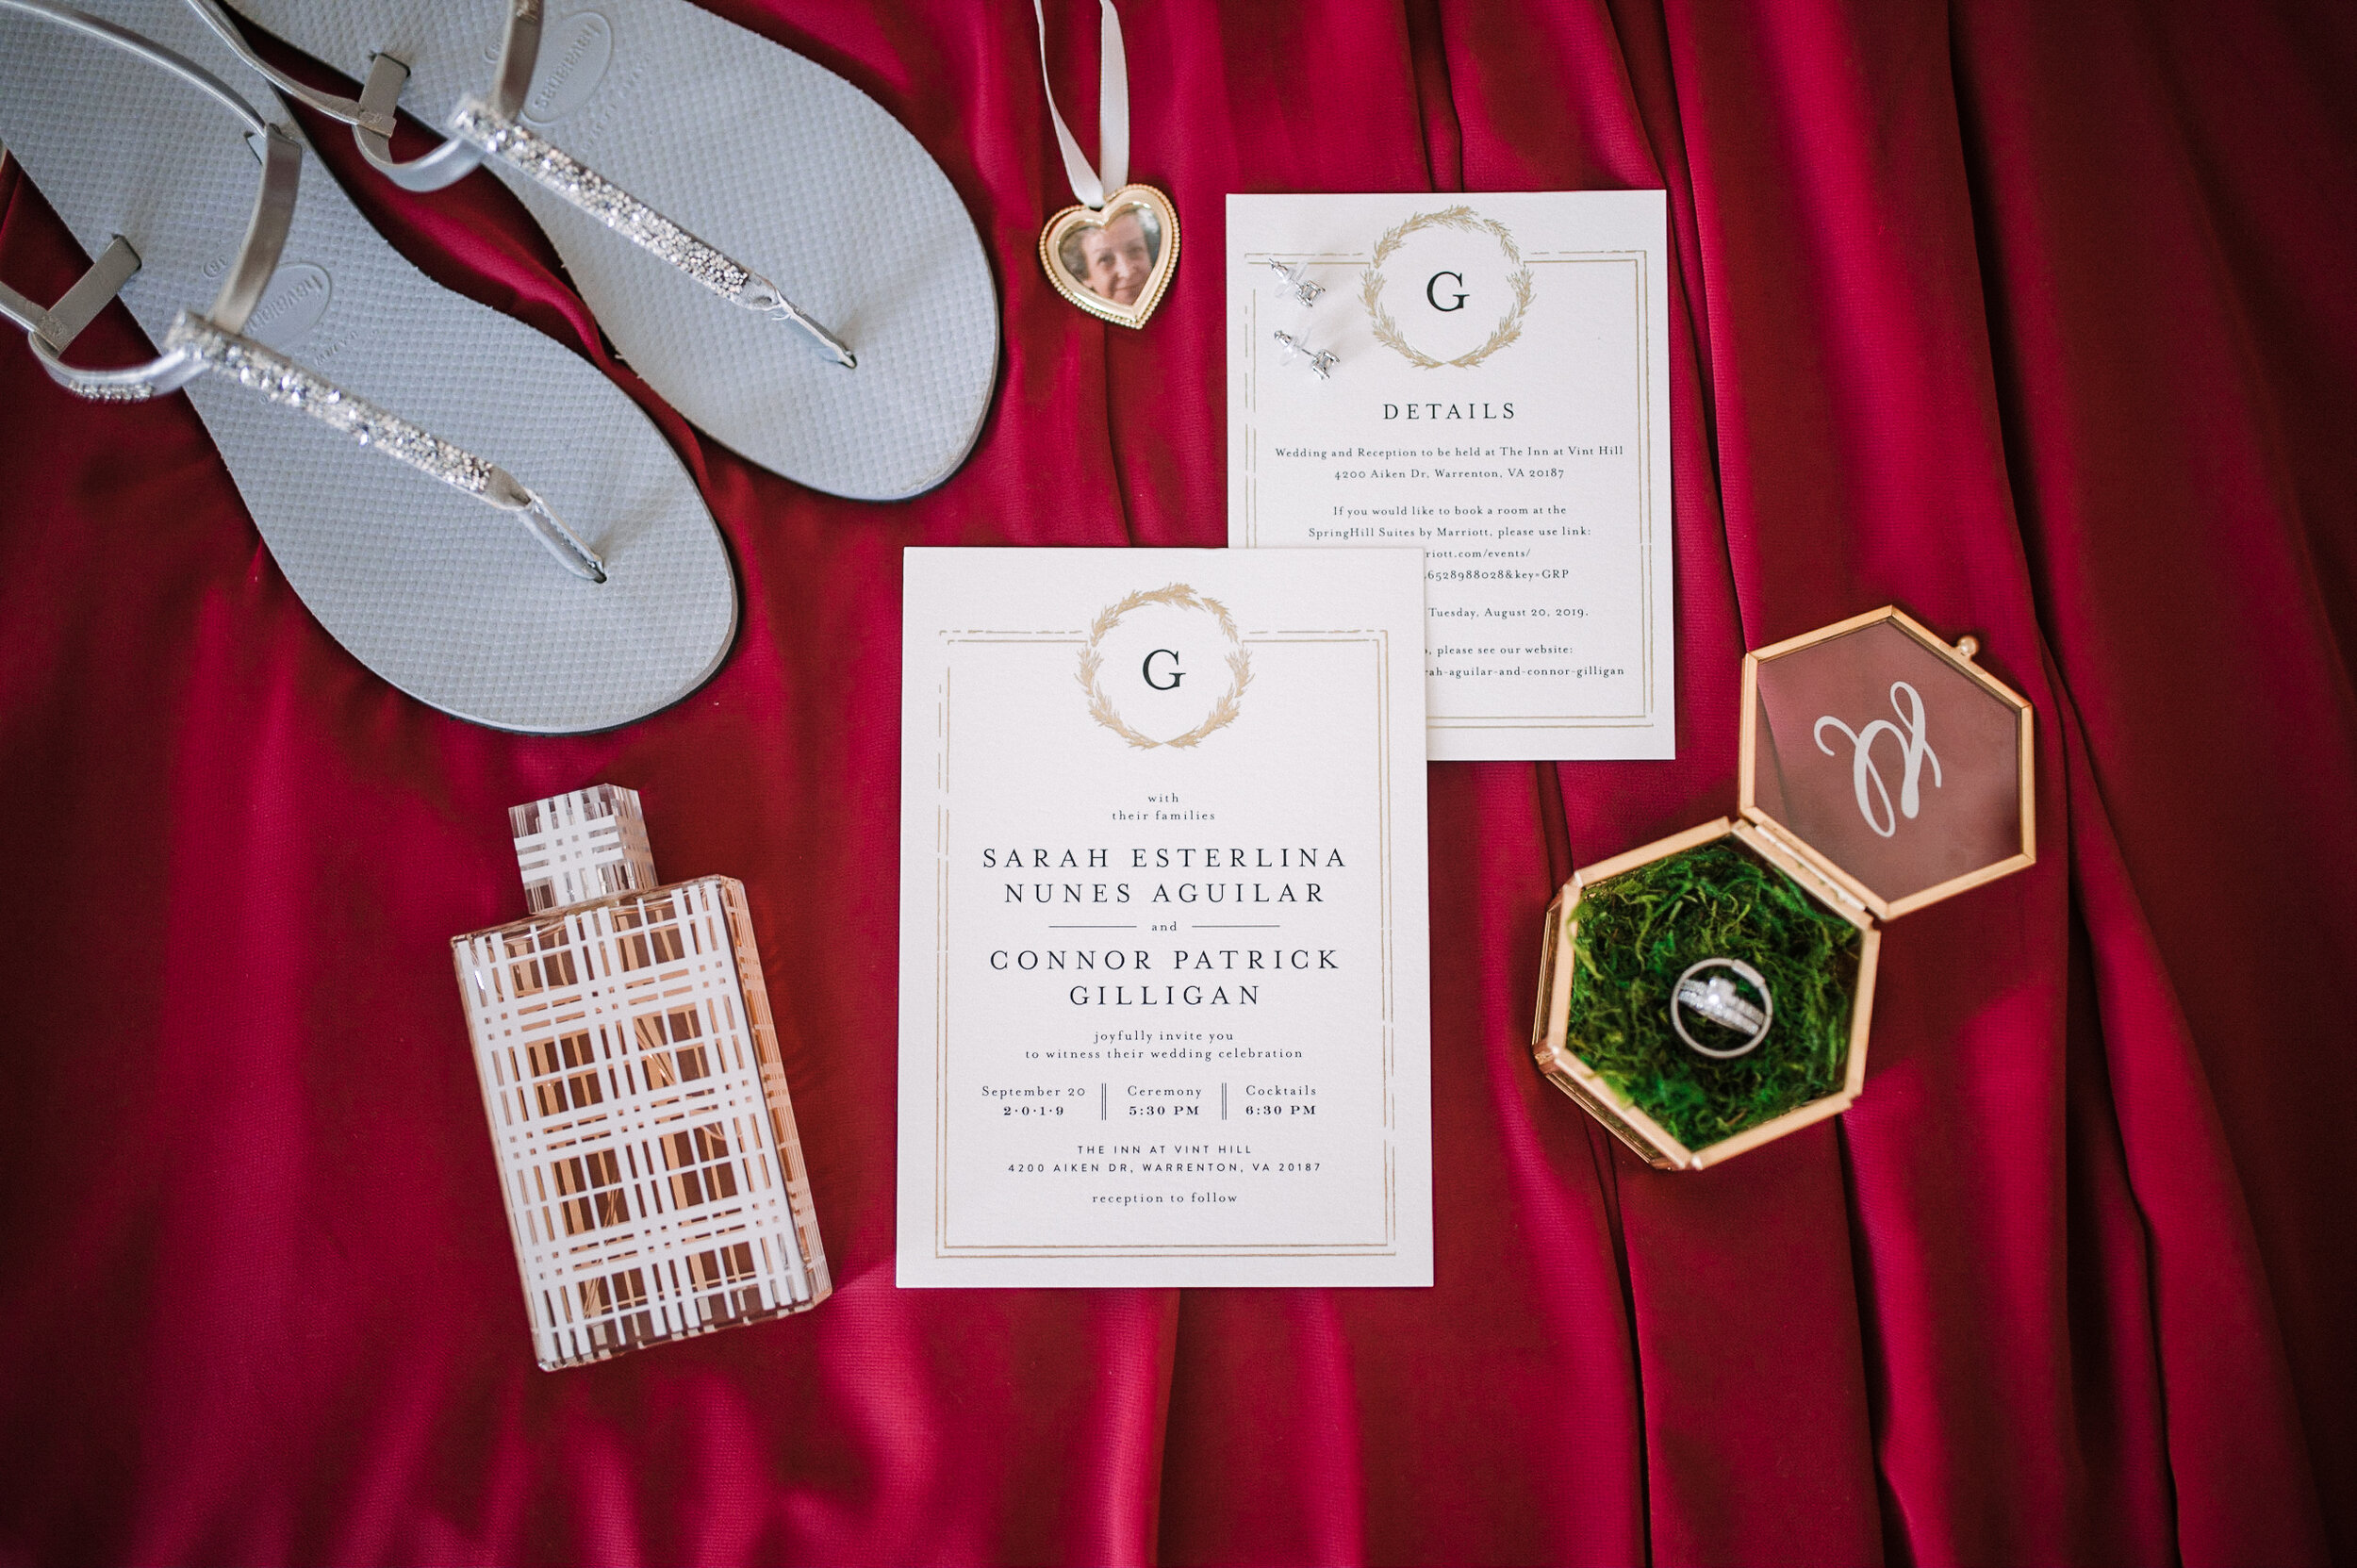 detail shot of wedding day stationery at The Inn at Vint Hill